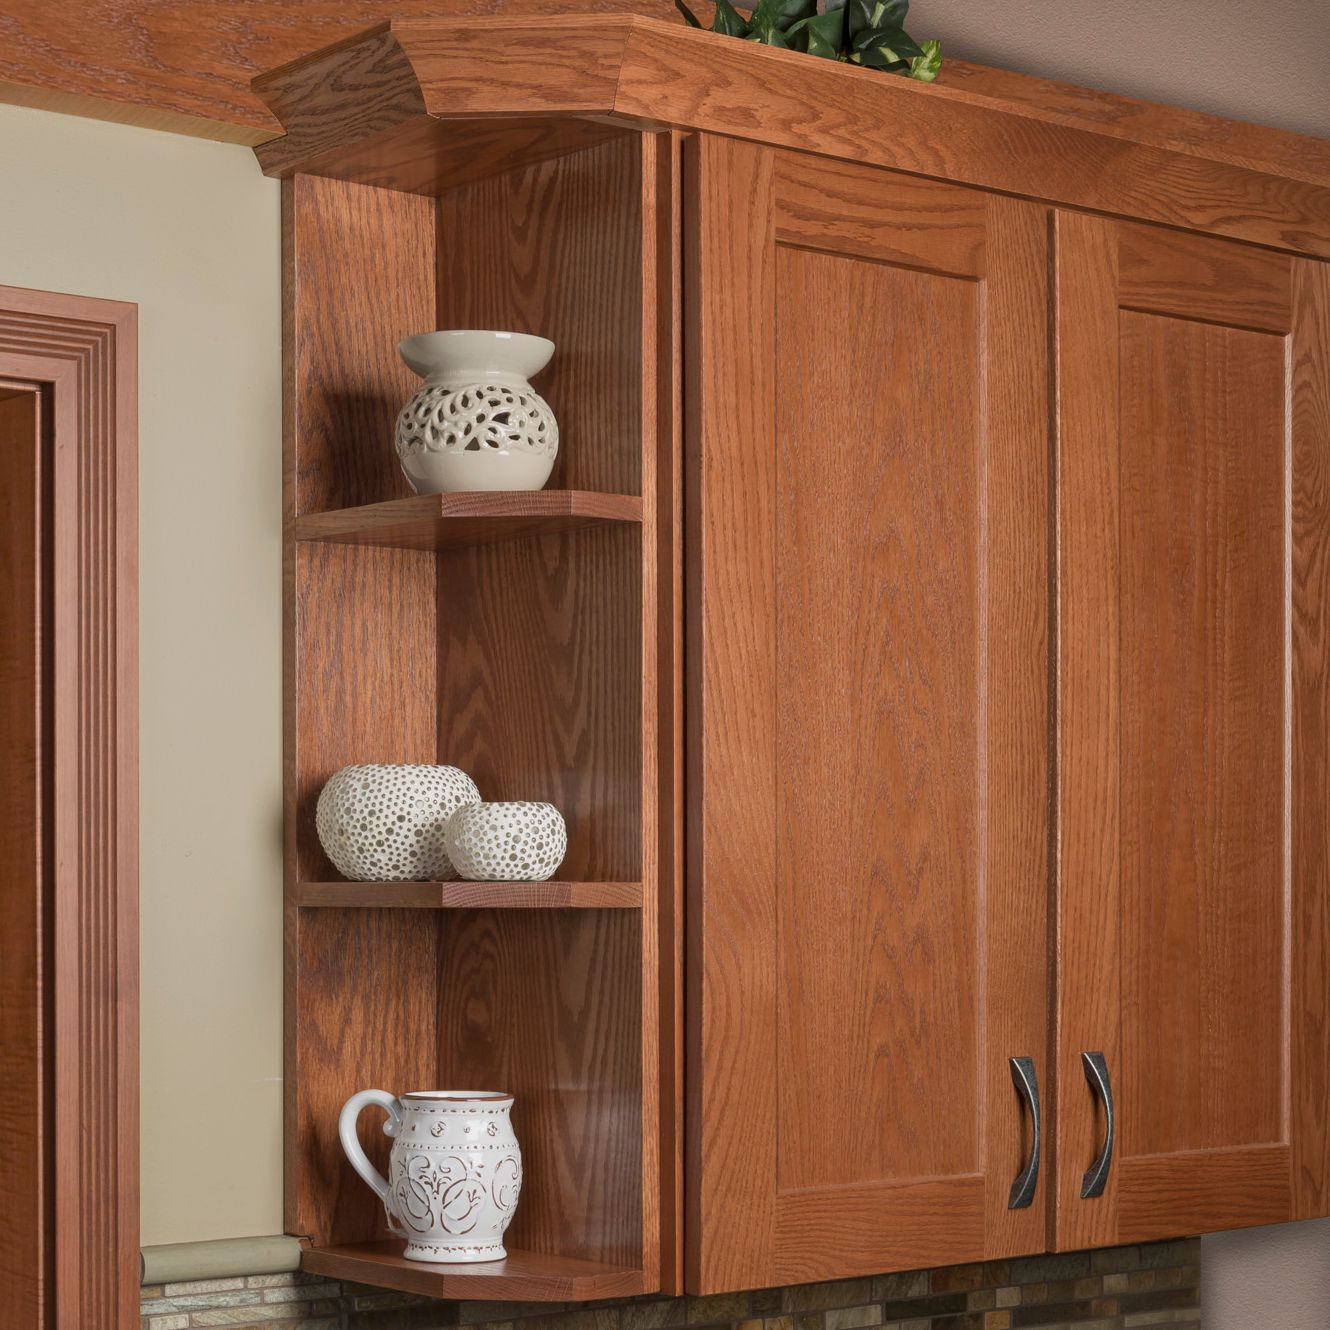 Classic kountry kitchen cabinets modern on kountry kitchen cabinets